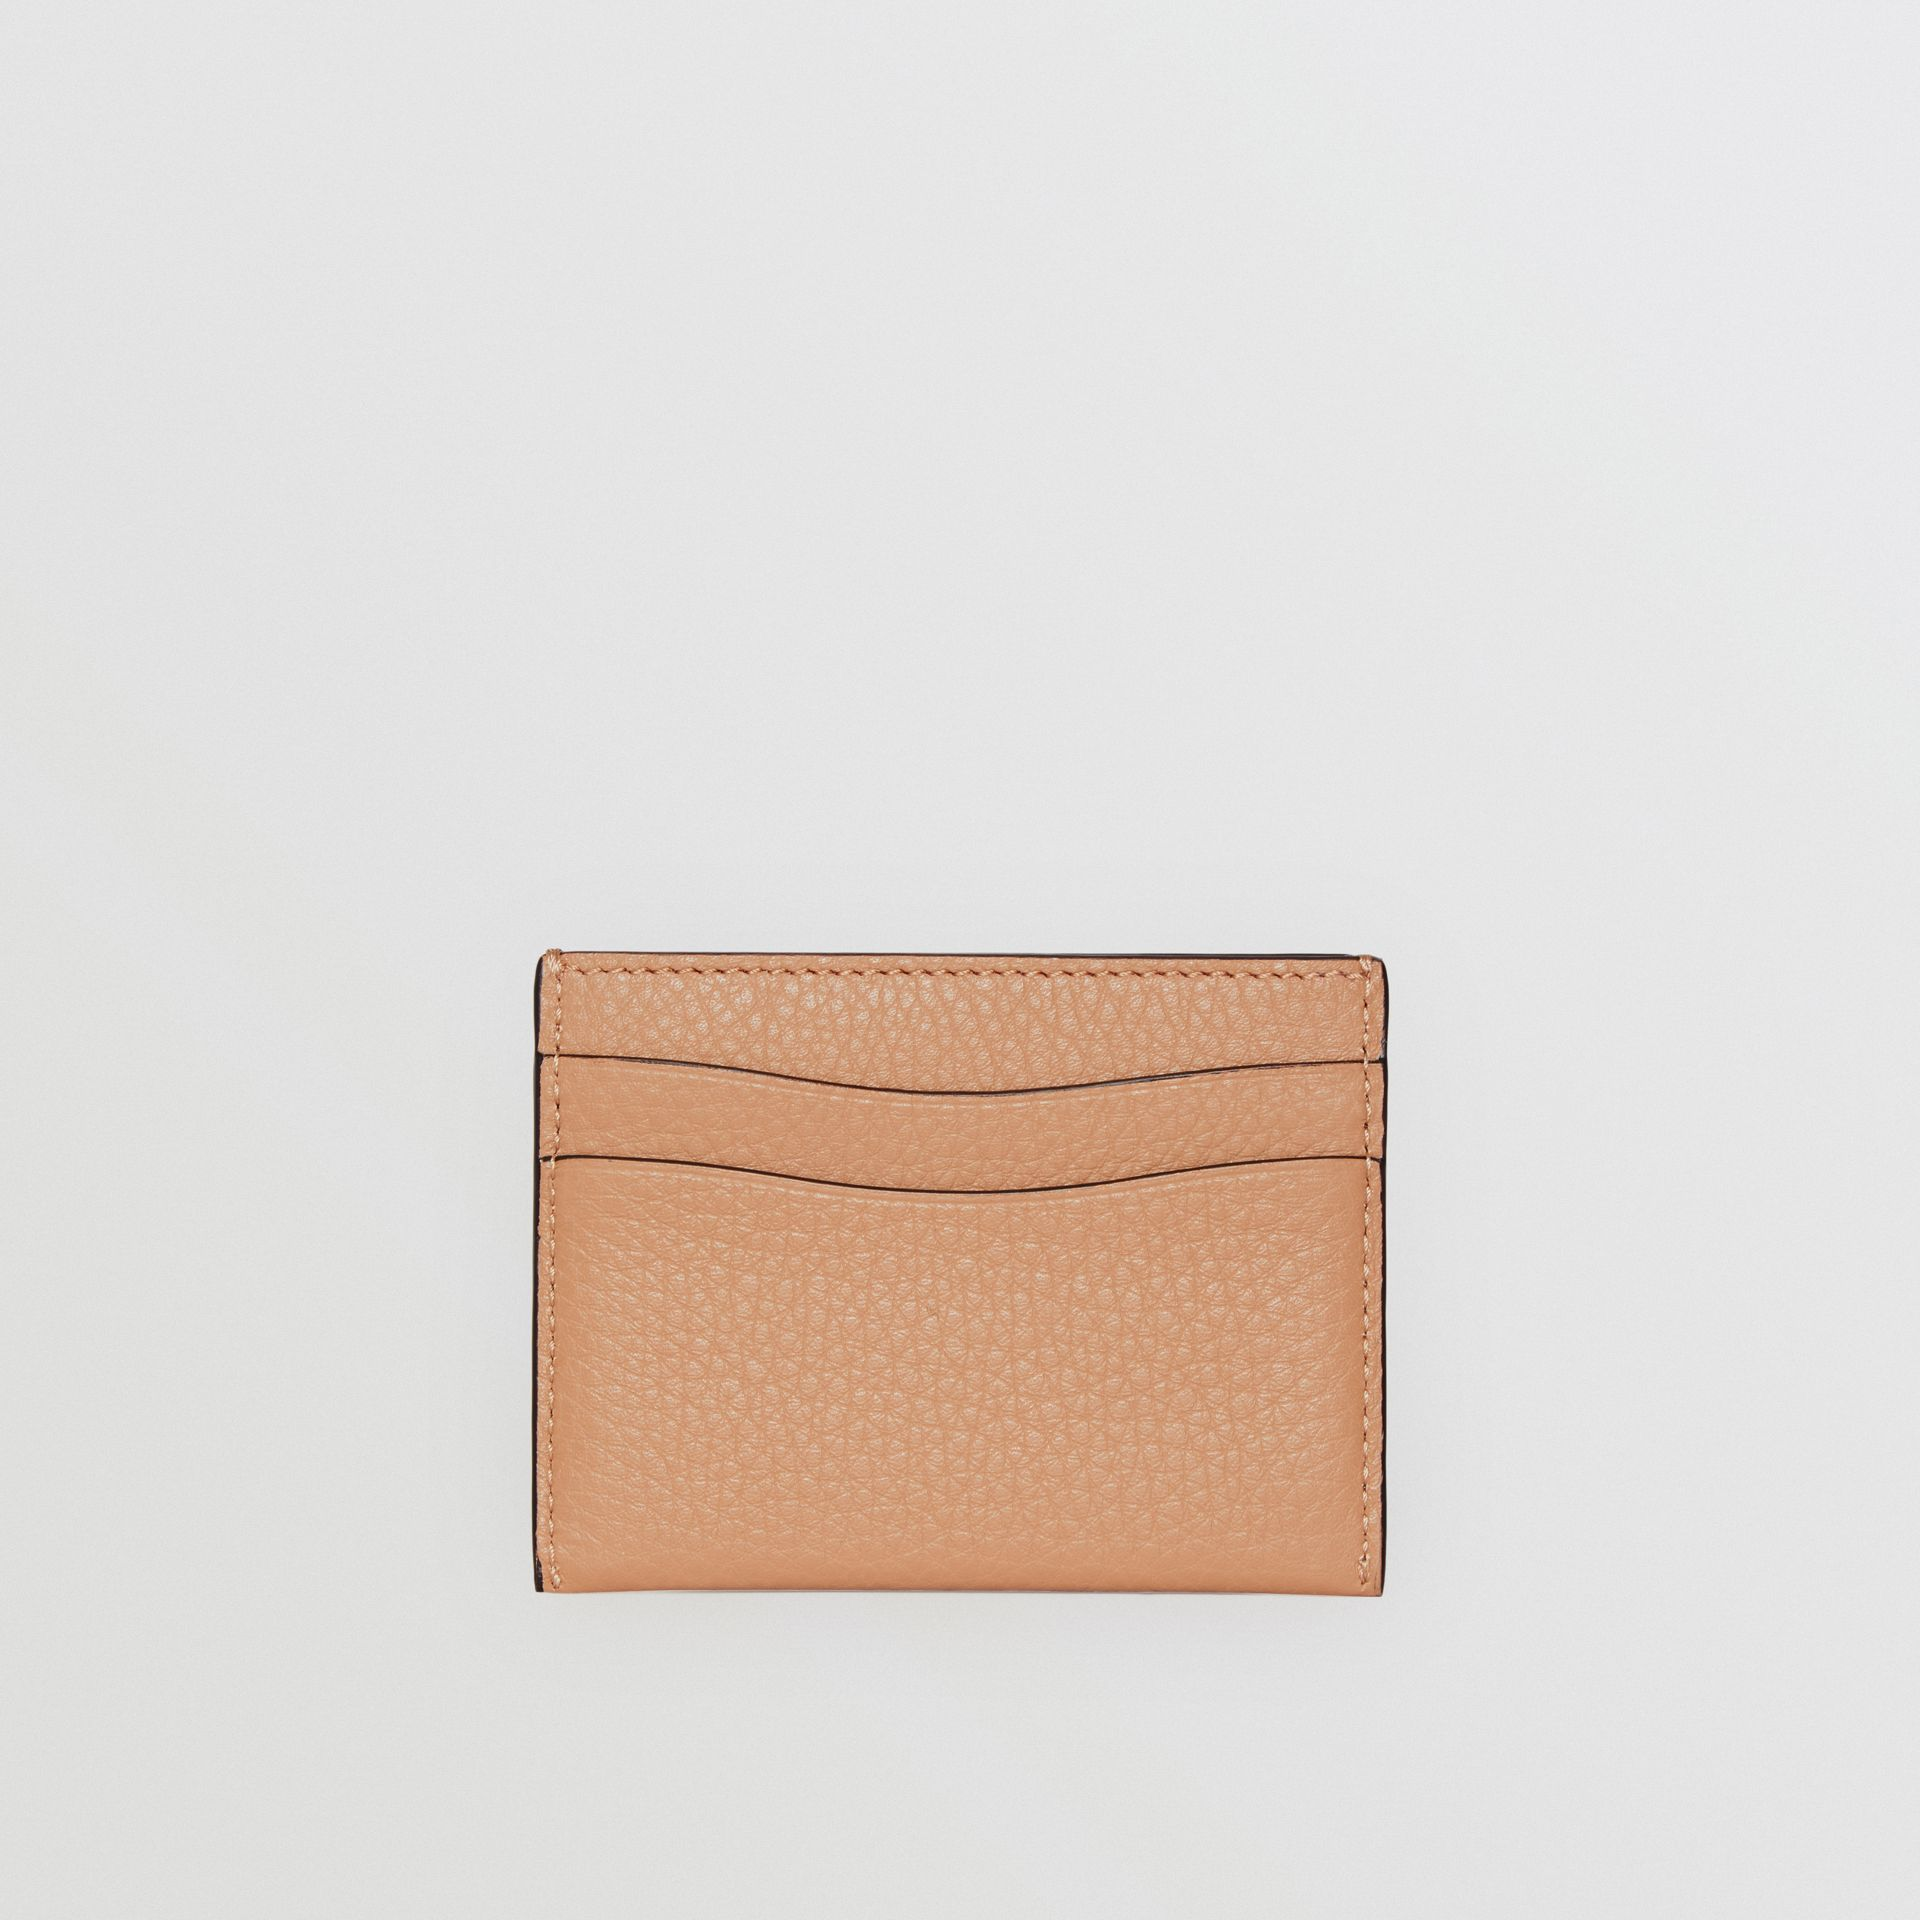 Grainy Leather Card Case in Light Camel - Women | Burberry - gallery image 4